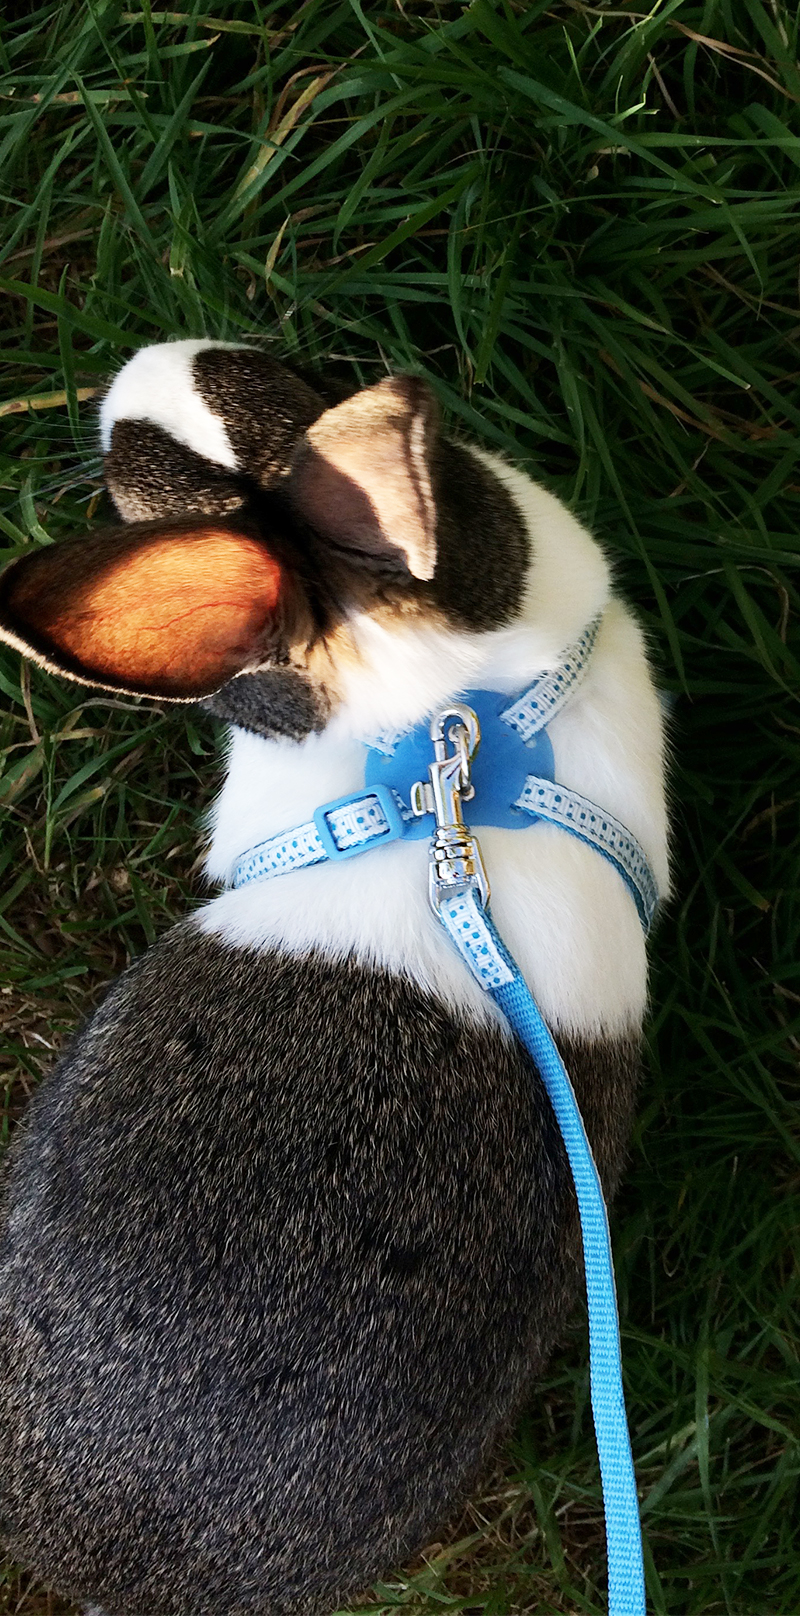 Bunny on a leash - using a rabbit harness to go rabbit walking